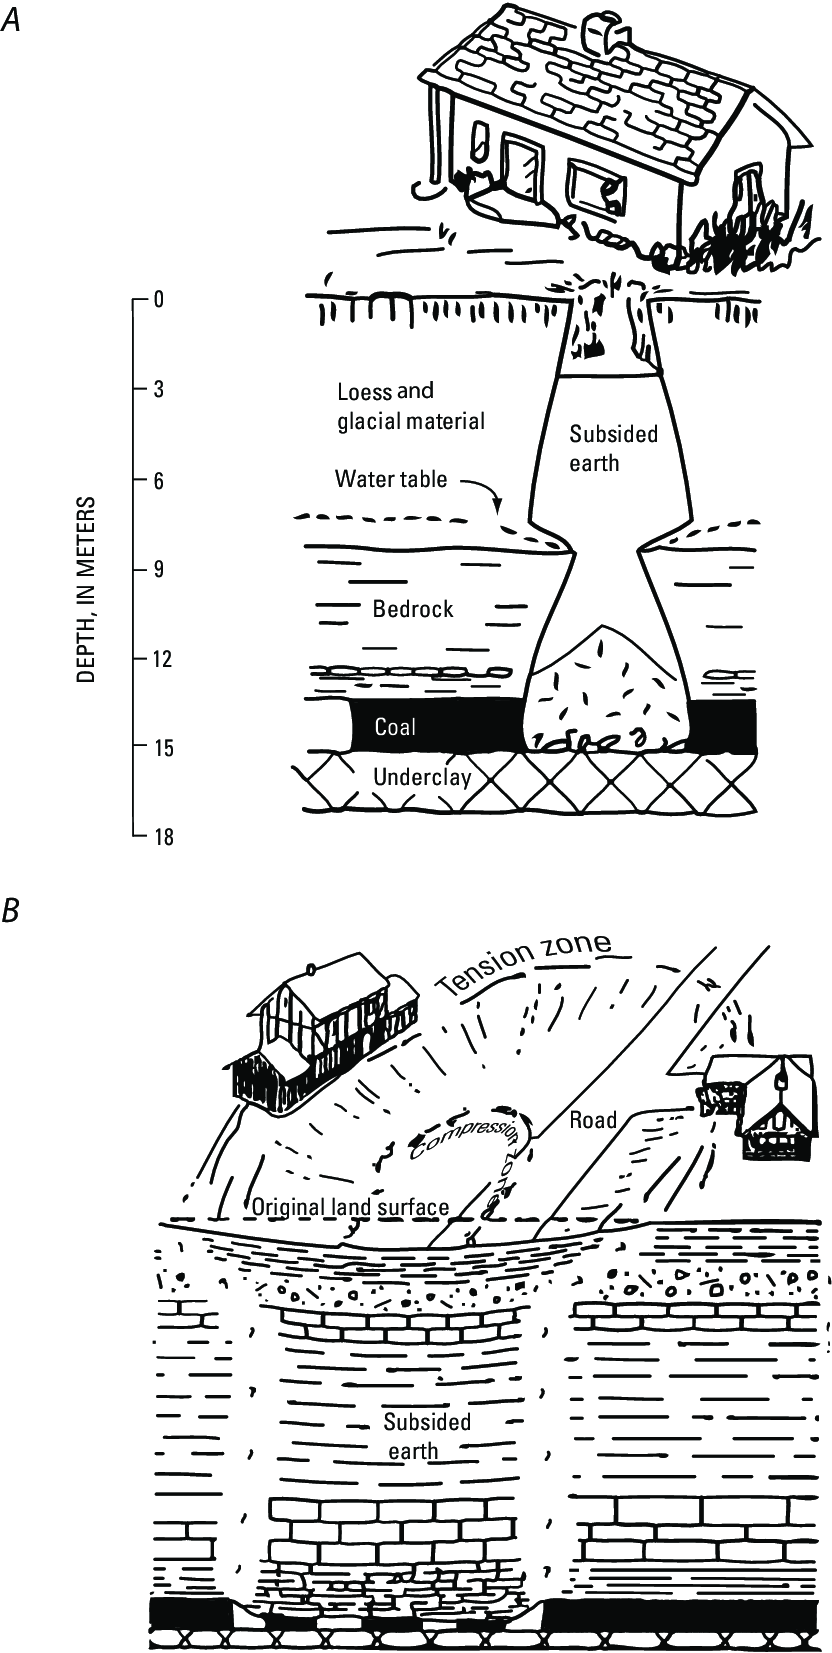 medium resolution of typical types of subsidence associated with underground coal mining a pit subsidence